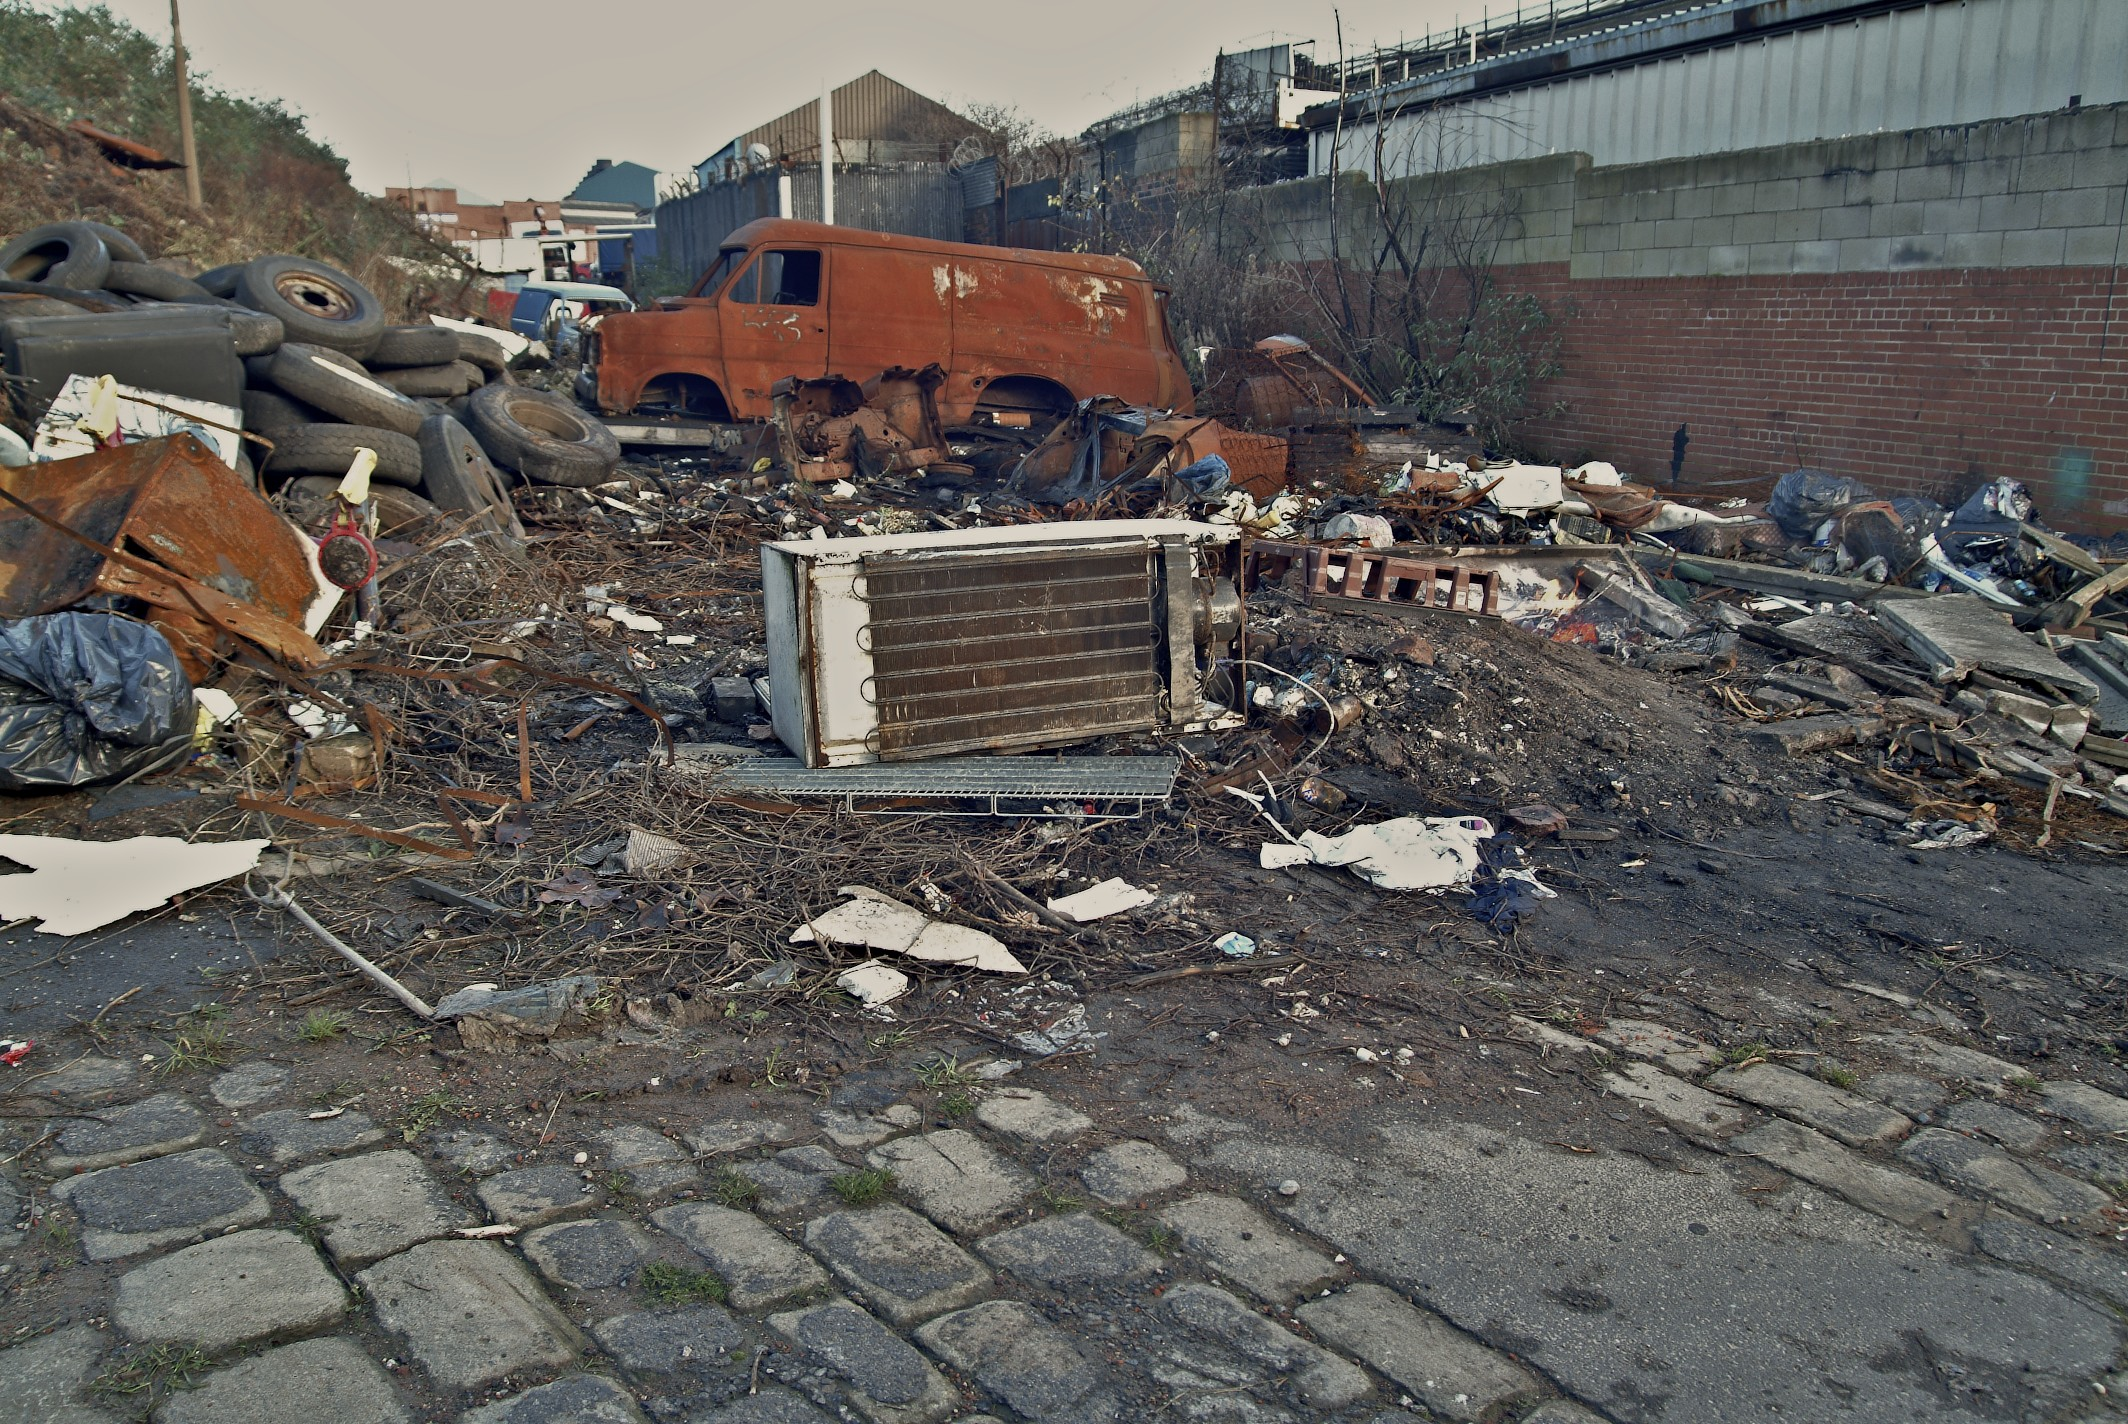 These pics show just what it was like in Pitsmoor when I was a kid. Today you don't see this any more the place has become a very much cleaner city. This area is literally a street away from where I was born.